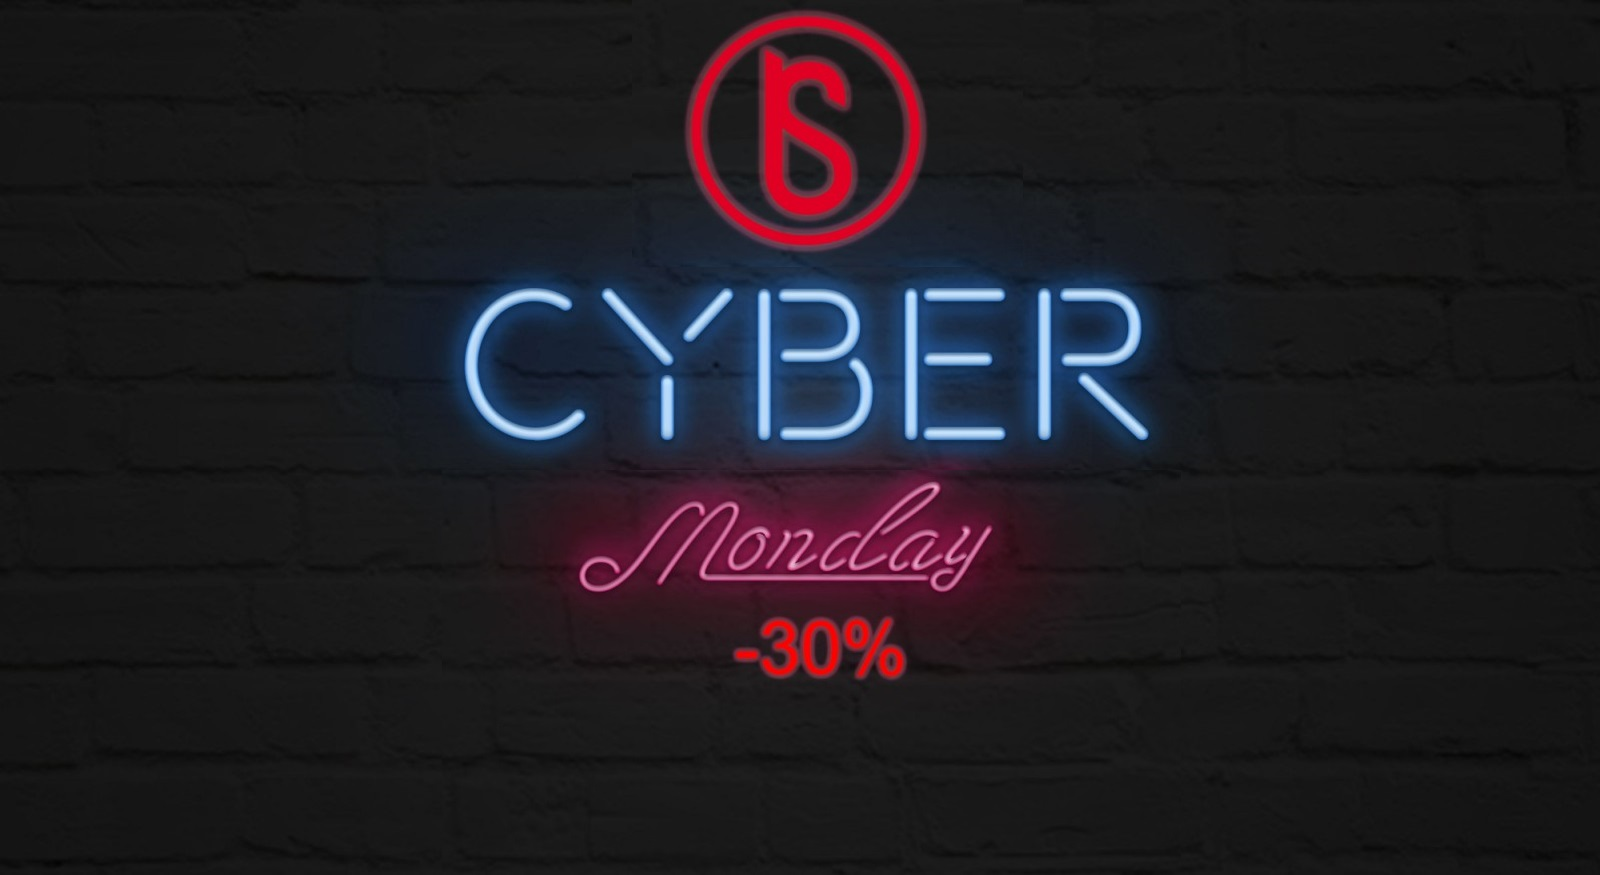 CyberMonday | SanchoBag SanchoBag